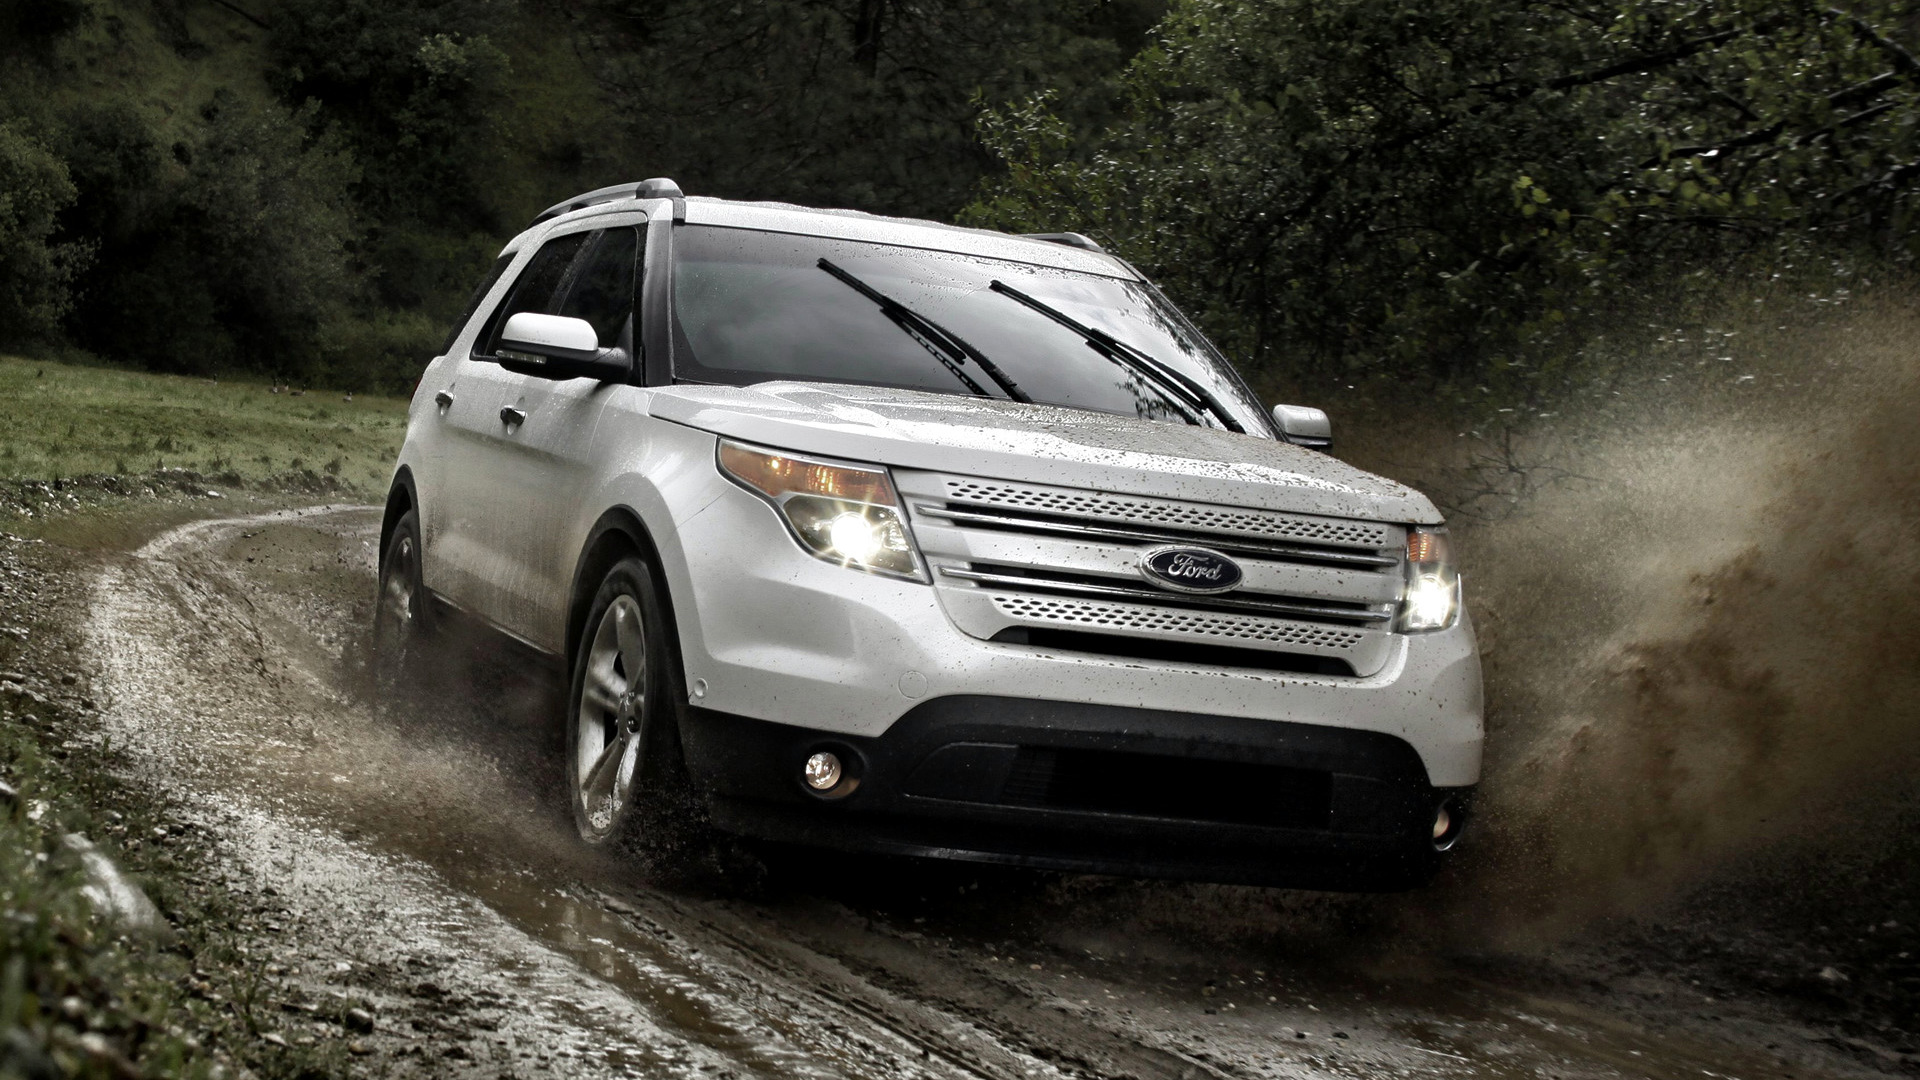 Sport Chrysler Jeep Dodge Ram >> 2010 Ford Explorer - Wallpapers and HD Images | Car Pixel